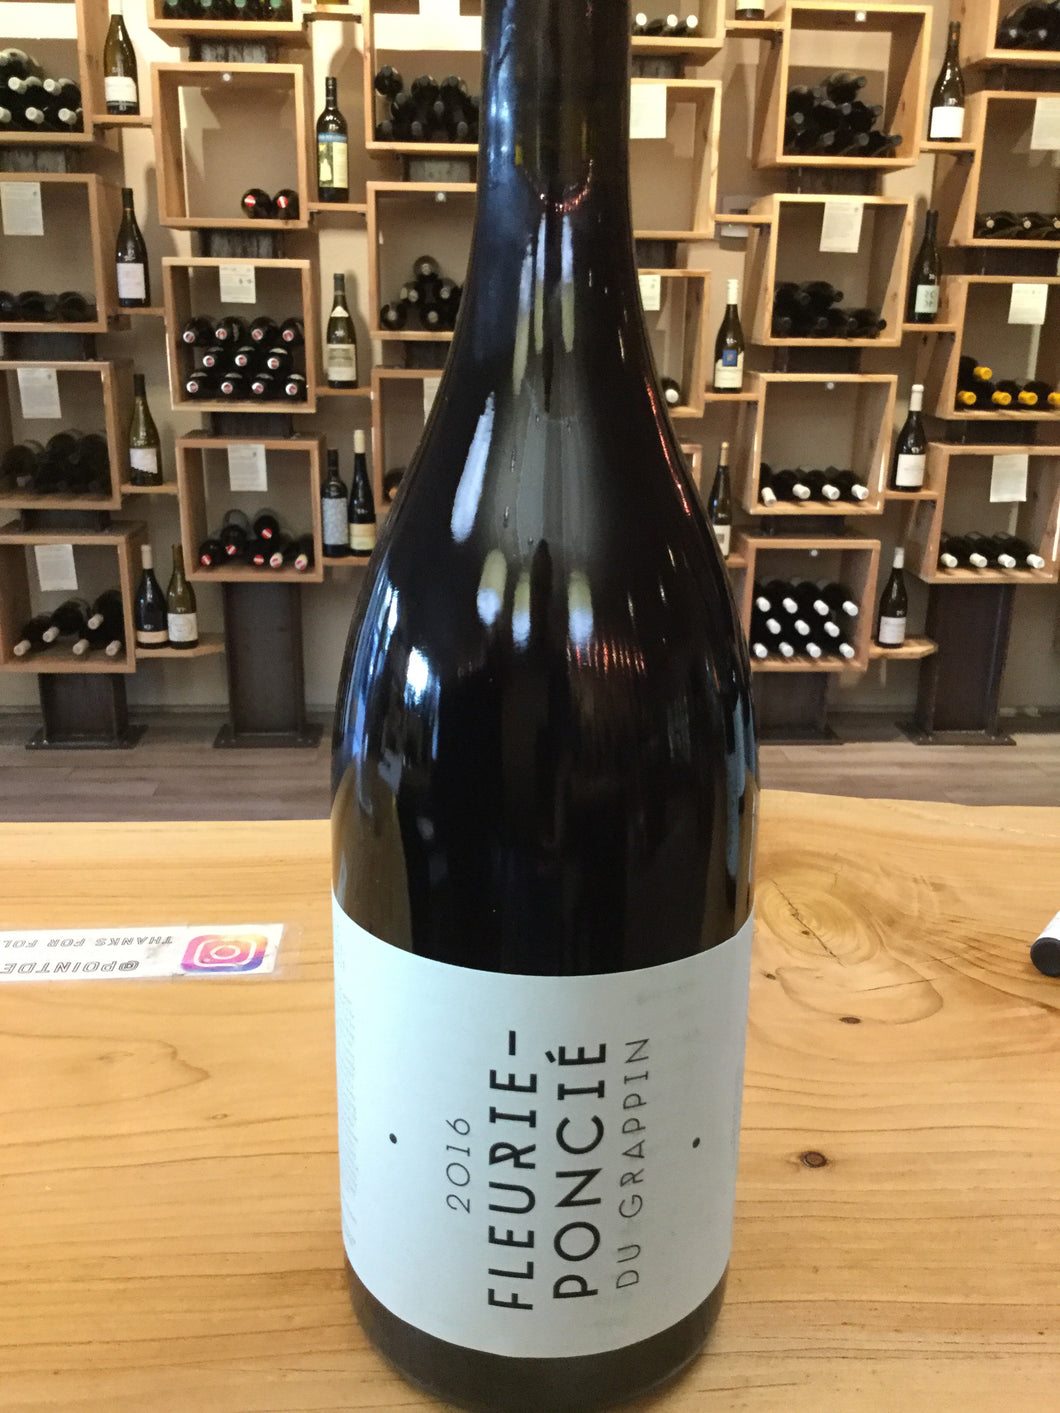 Du Grappin '16 Fleurie-Poncie